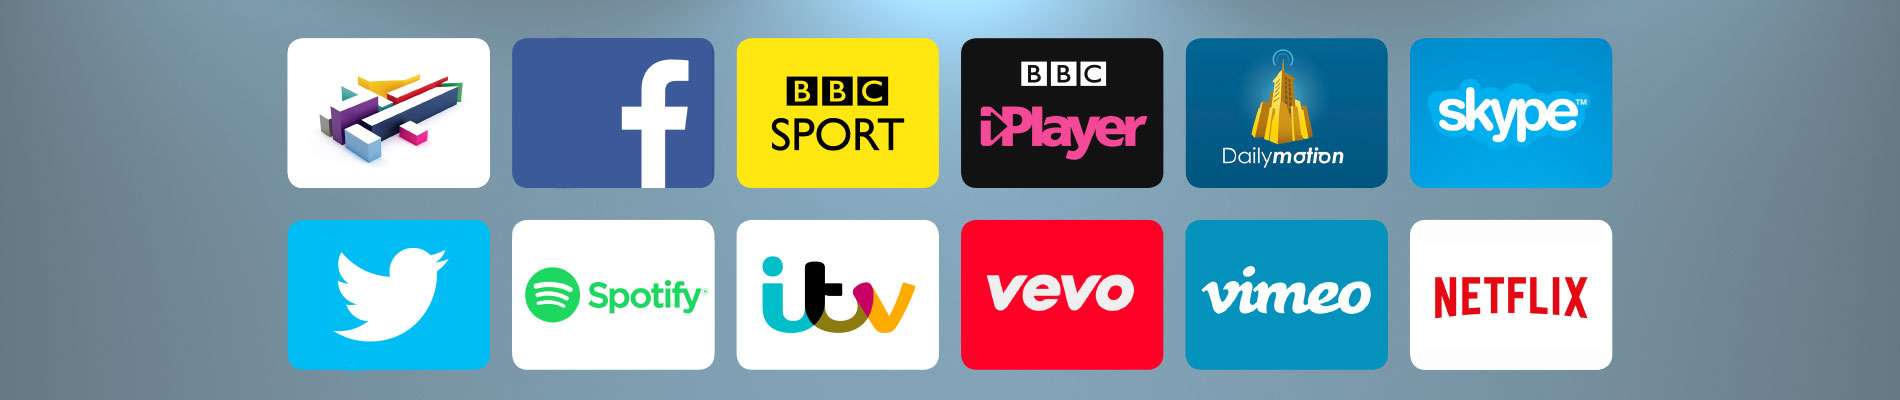 Android Smart TV Video Guide - Cello Electronics (UK) Ltd